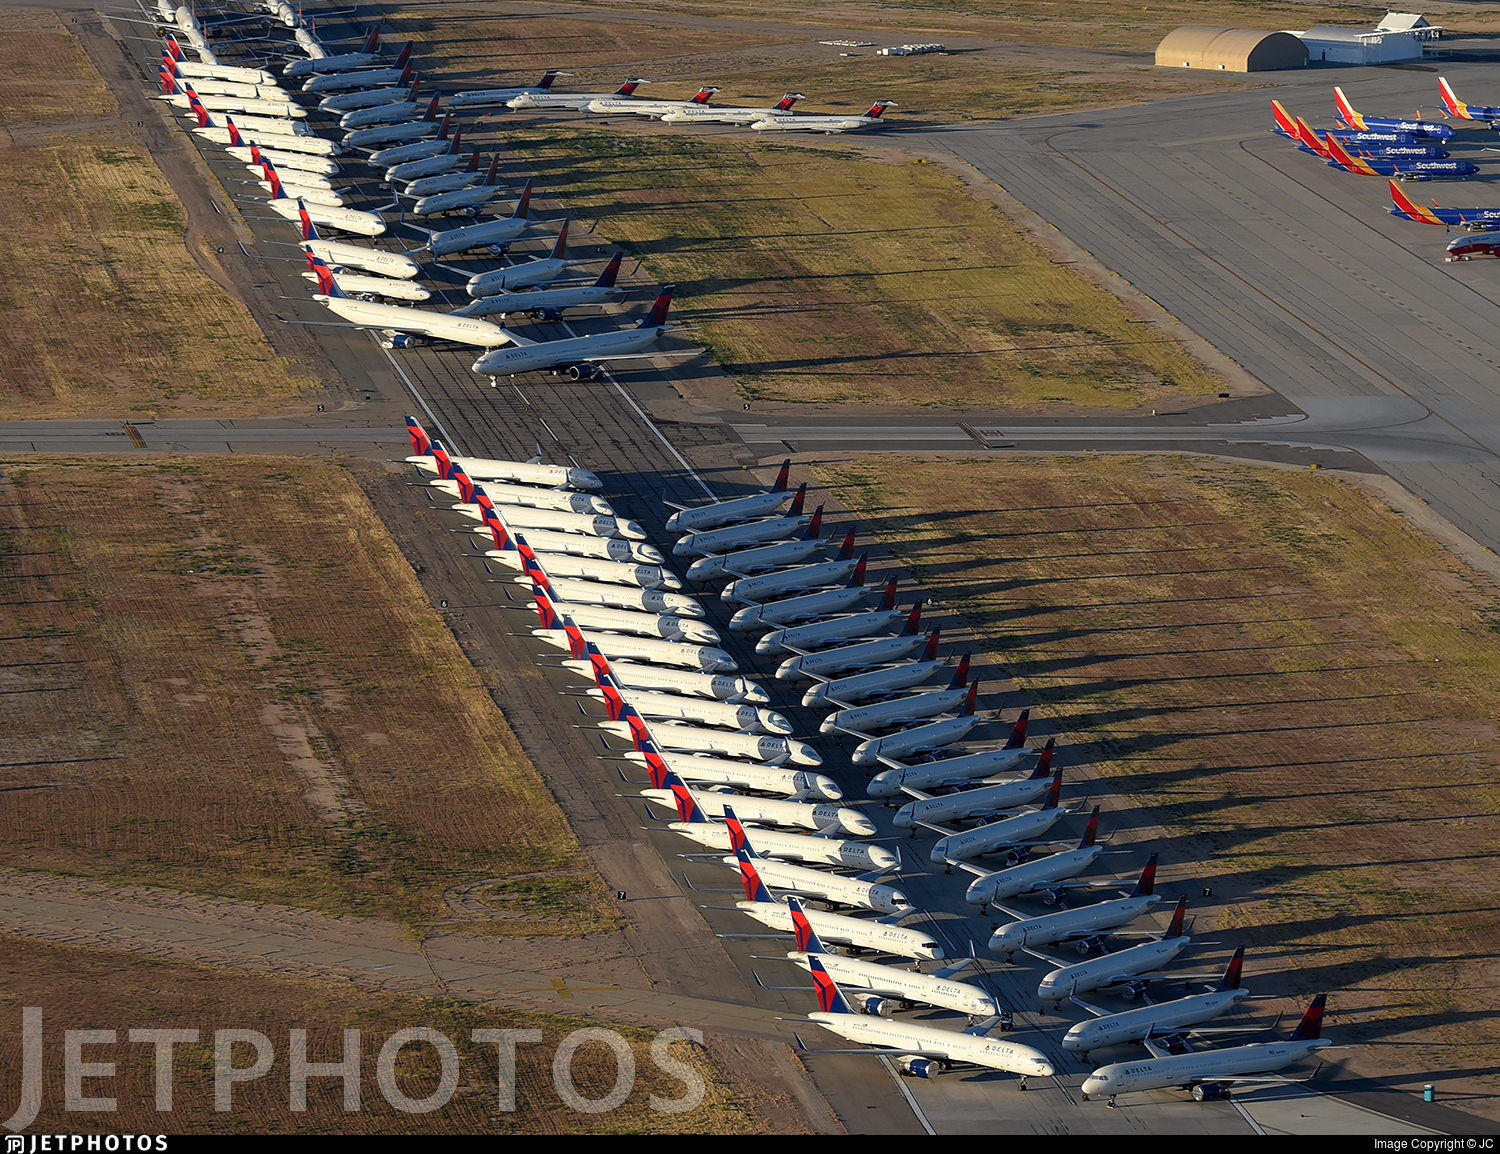 Delta aircraft in storage at Victorville